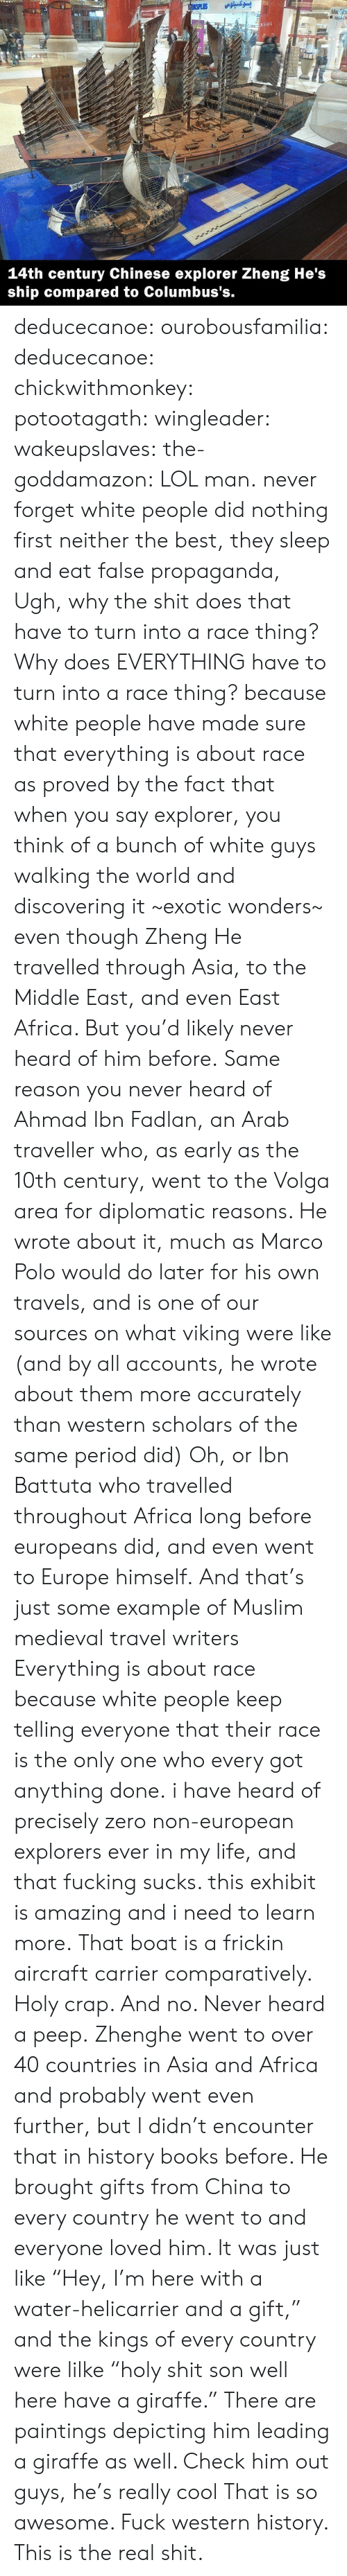 "Scholars: بوكسيلوس  SPLUS  Ma  A  83INT  14th century Chinese explorer Zheng He's  ship compared to Columbus's. deducecanoe: ourobousfamilia:  deducecanoe:  chickwithmonkey:  potootagath:  wingleader:  wakeupslaves:  the-goddamazon:  LOL man.  never forget white people did nothing first neither the best, they sleep and eat false propaganda,  Ugh, why the shit does that have to turn into a race thing? Why does EVERYTHING have to turn into a race thing?  because white people have made sure that everything is about race as proved by the fact that when you say explorer, you think of a bunch of white guys walking the world and discovering it ~exotic wonders~ even though Zheng He travelled through Asia, to the Middle East, and even East Africa. But you'd likely never heard of him before. Same reason you never heard of Ahmad Ibn Fadlan, an Arab traveller who, as early as the 10th century, went to the Volga area for diplomatic reasons. He wrote about it, much as Marco Polo would do later for his own travels, and is one of our sources on what viking were like (and by all accounts, he wrote about them more accurately than western scholars of the same period did) Oh, or Ibn Battuta who travelled throughout Africa long before europeans did, and even went to Europe himself. And that's just some example of Muslim medieval travel writers Everything is about race because white people keep telling everyone that their race is the only one who every got anything done.  i have heard of precisely zero non-european explorers ever in my life, and that fucking sucks. this exhibit is amazing and i need to learn more.  That boat is a frickin aircraft carrier comparatively. Holy crap. And no. Never heard a peep.  Zhenghe went to over 40 countries in Asia and Africa and probably went even further, but I didn't encounter that in history books before. He brought gifts from China to every country he went to and everyone loved him. It was just like ""Hey, I'm here with a water-helicarrier and a gift,"" and the kings of every country were lilke ""holy shit son well here have a giraffe."" There are paintings depicting him leading a giraffe as well. Check him out guys, he's really cool  That is so awesome. Fuck western history. This is the real shit."